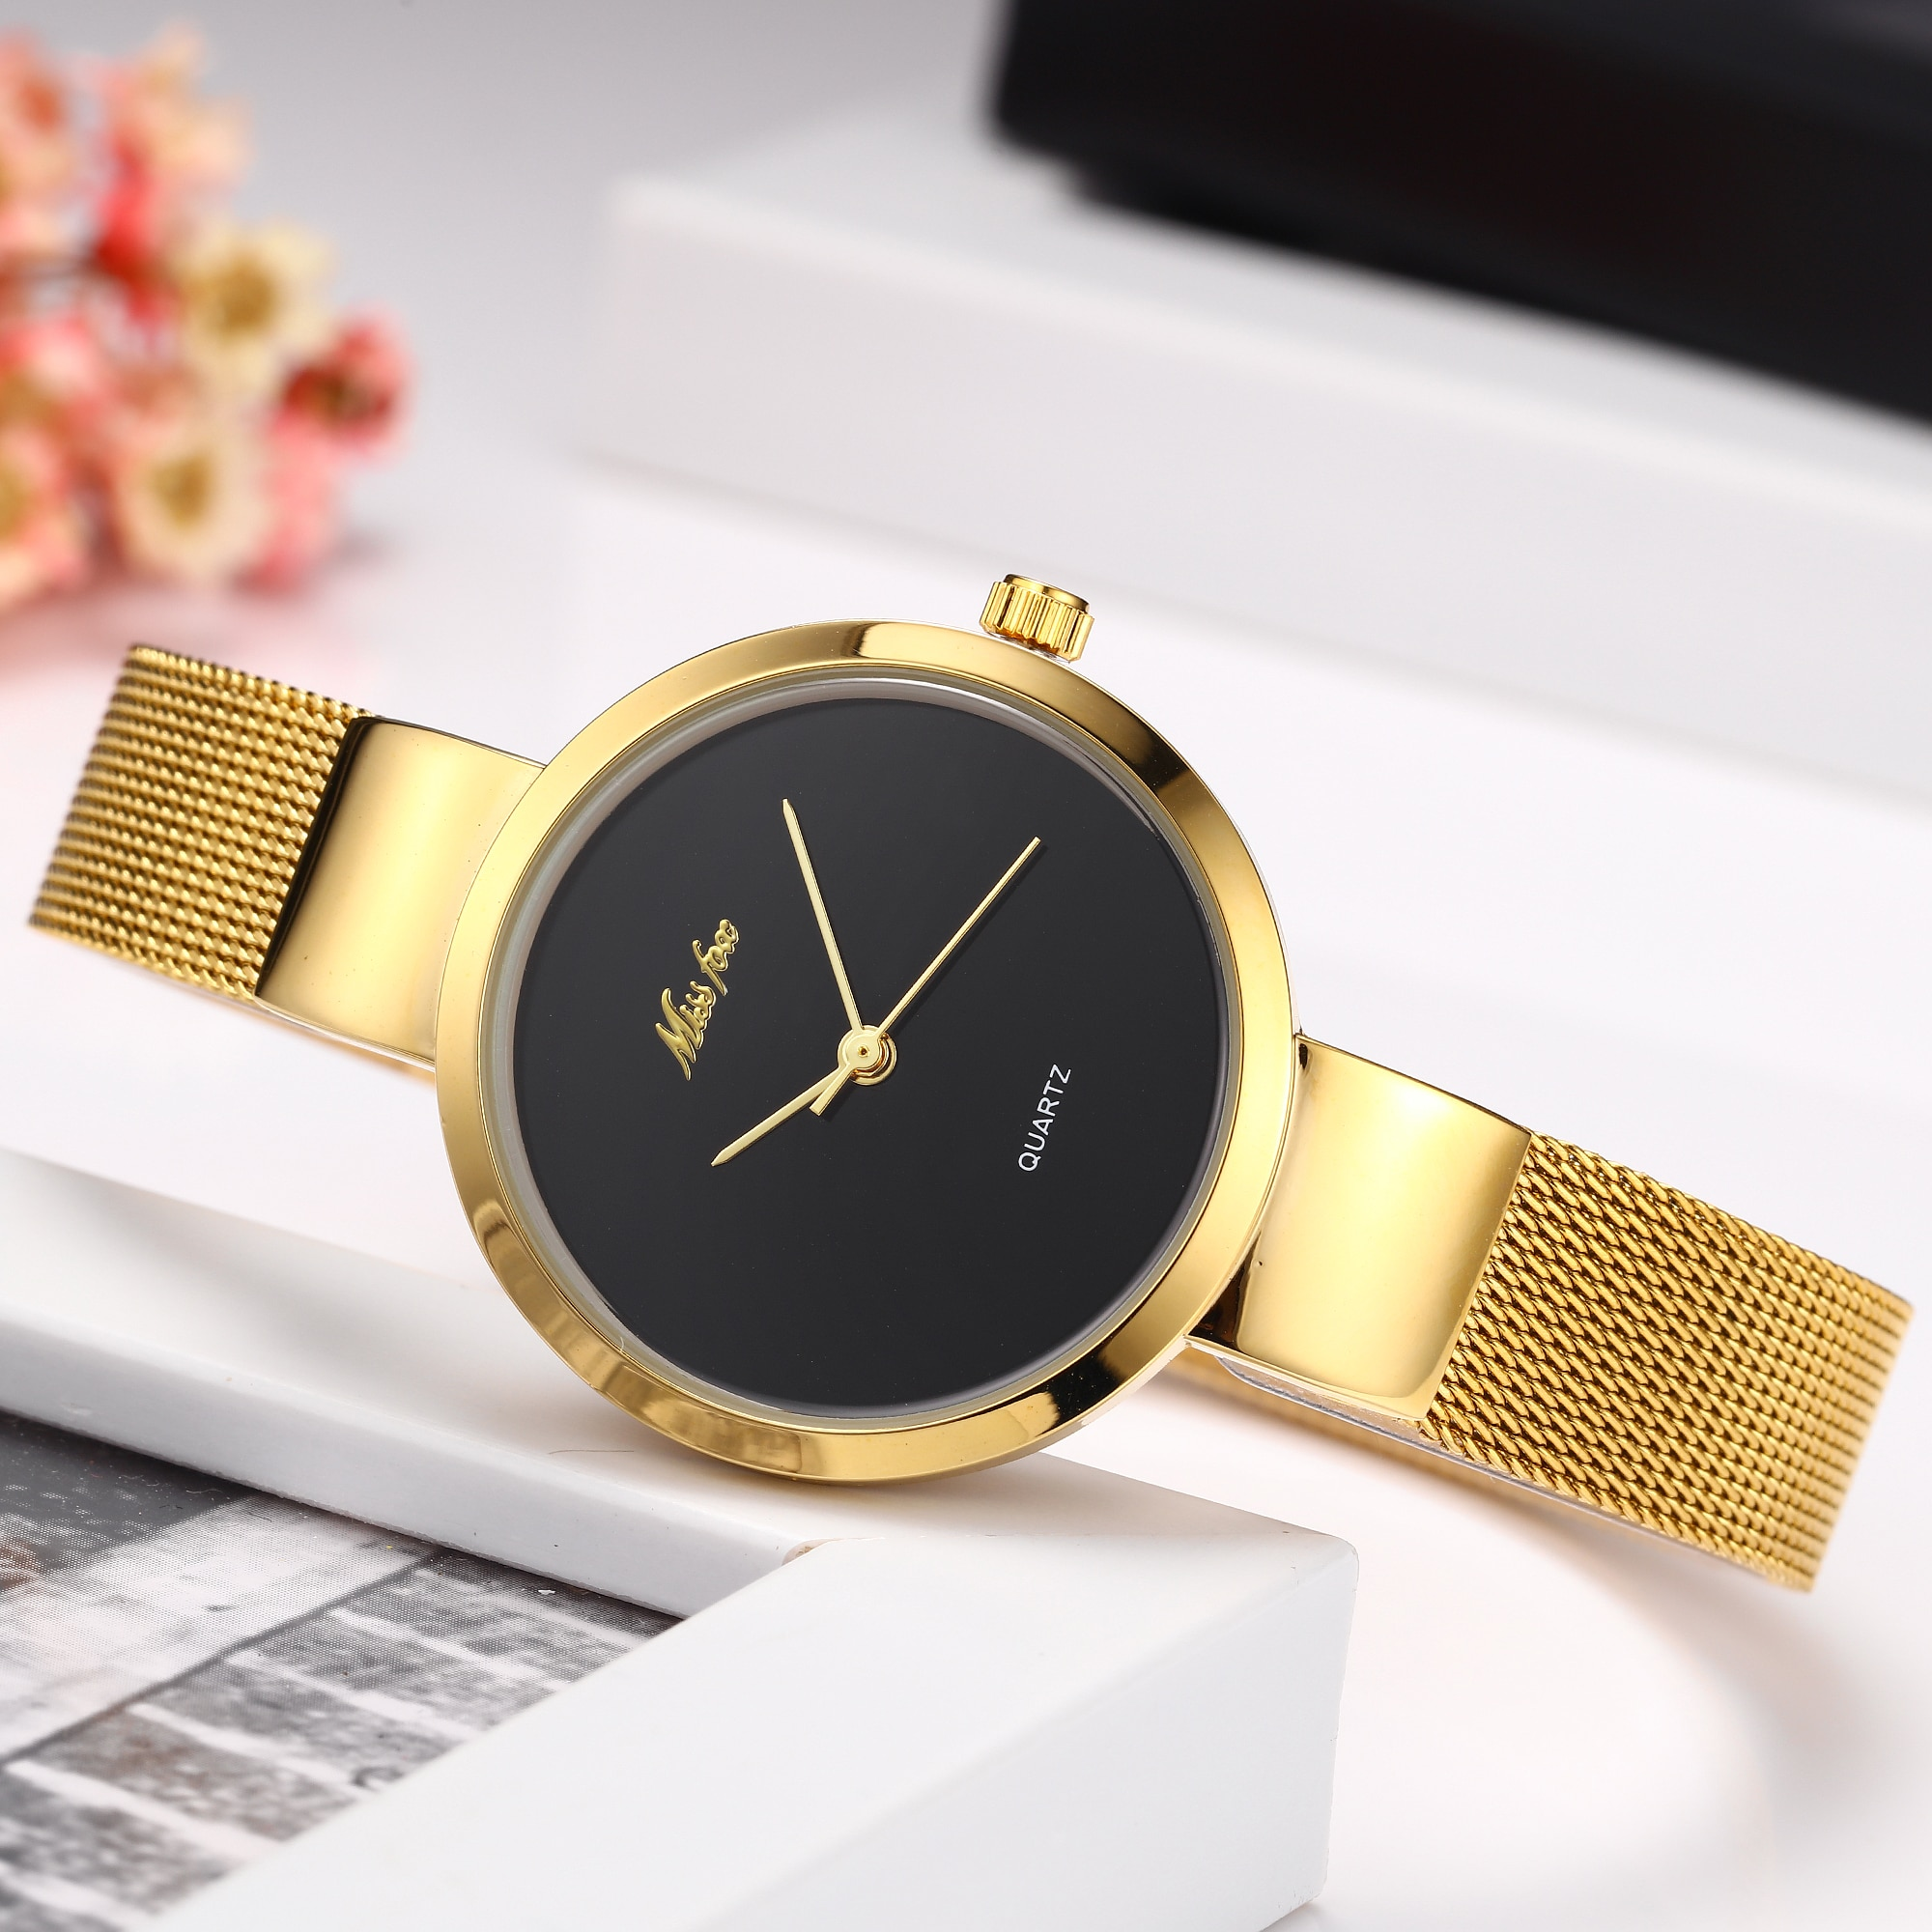 Japan Quartz Movement High Quality MISSFOX Women Watches Stainless Steel Mesh Gold Waterproof Ladies jewelry Watch Dropshipping enlarge